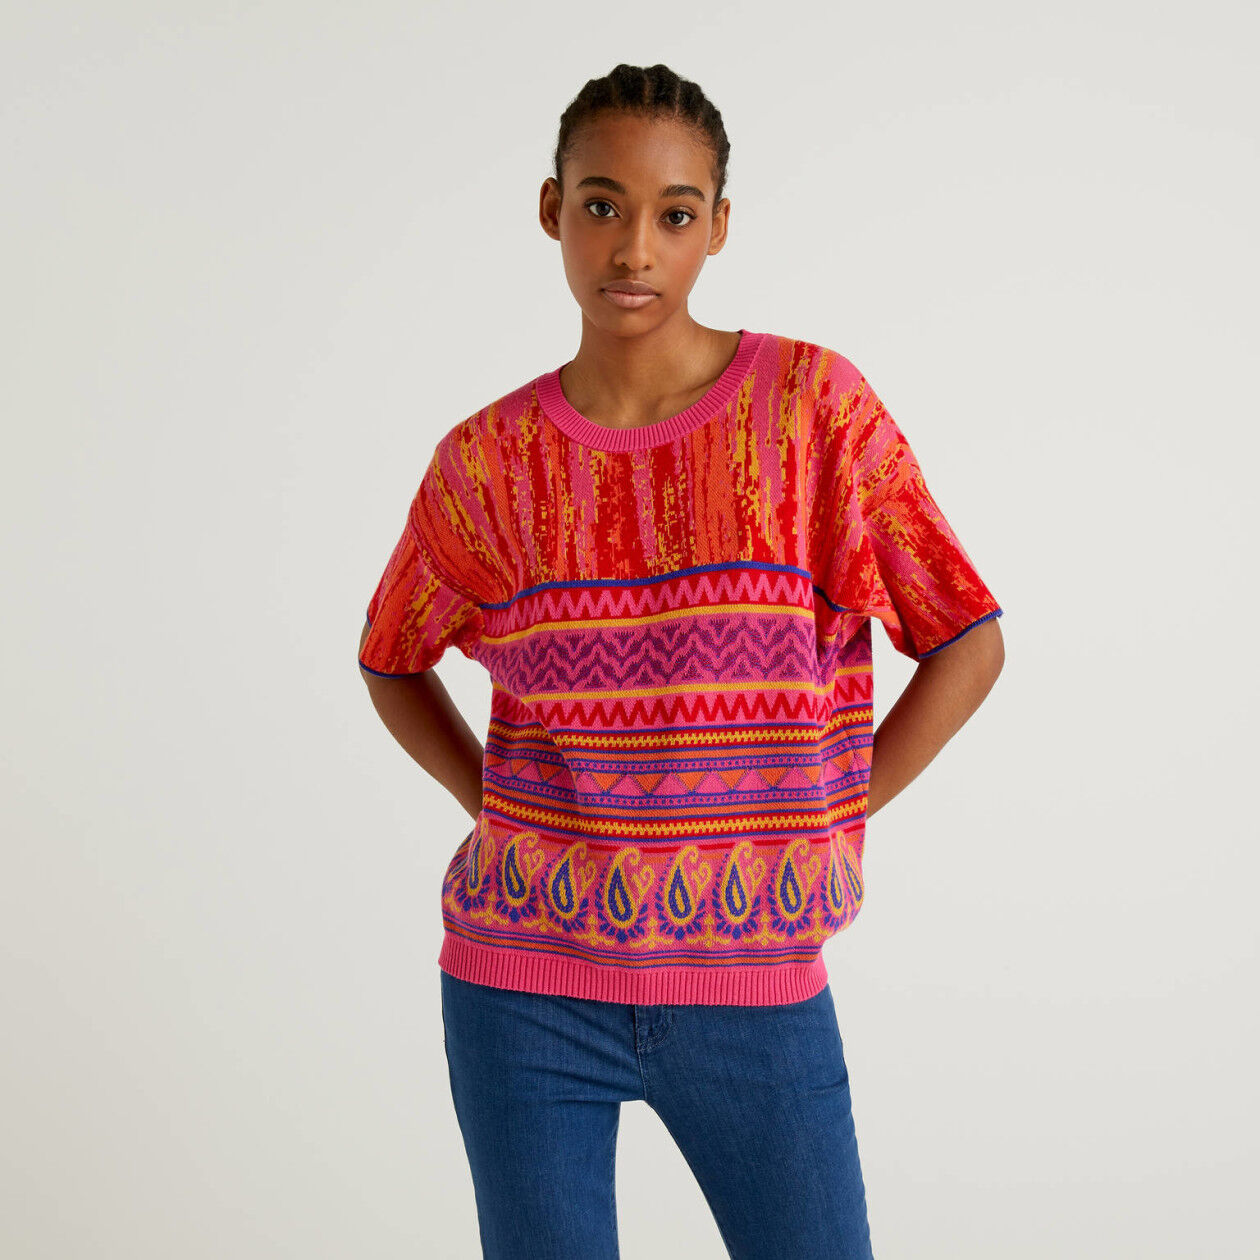 Sweater with multicolor design